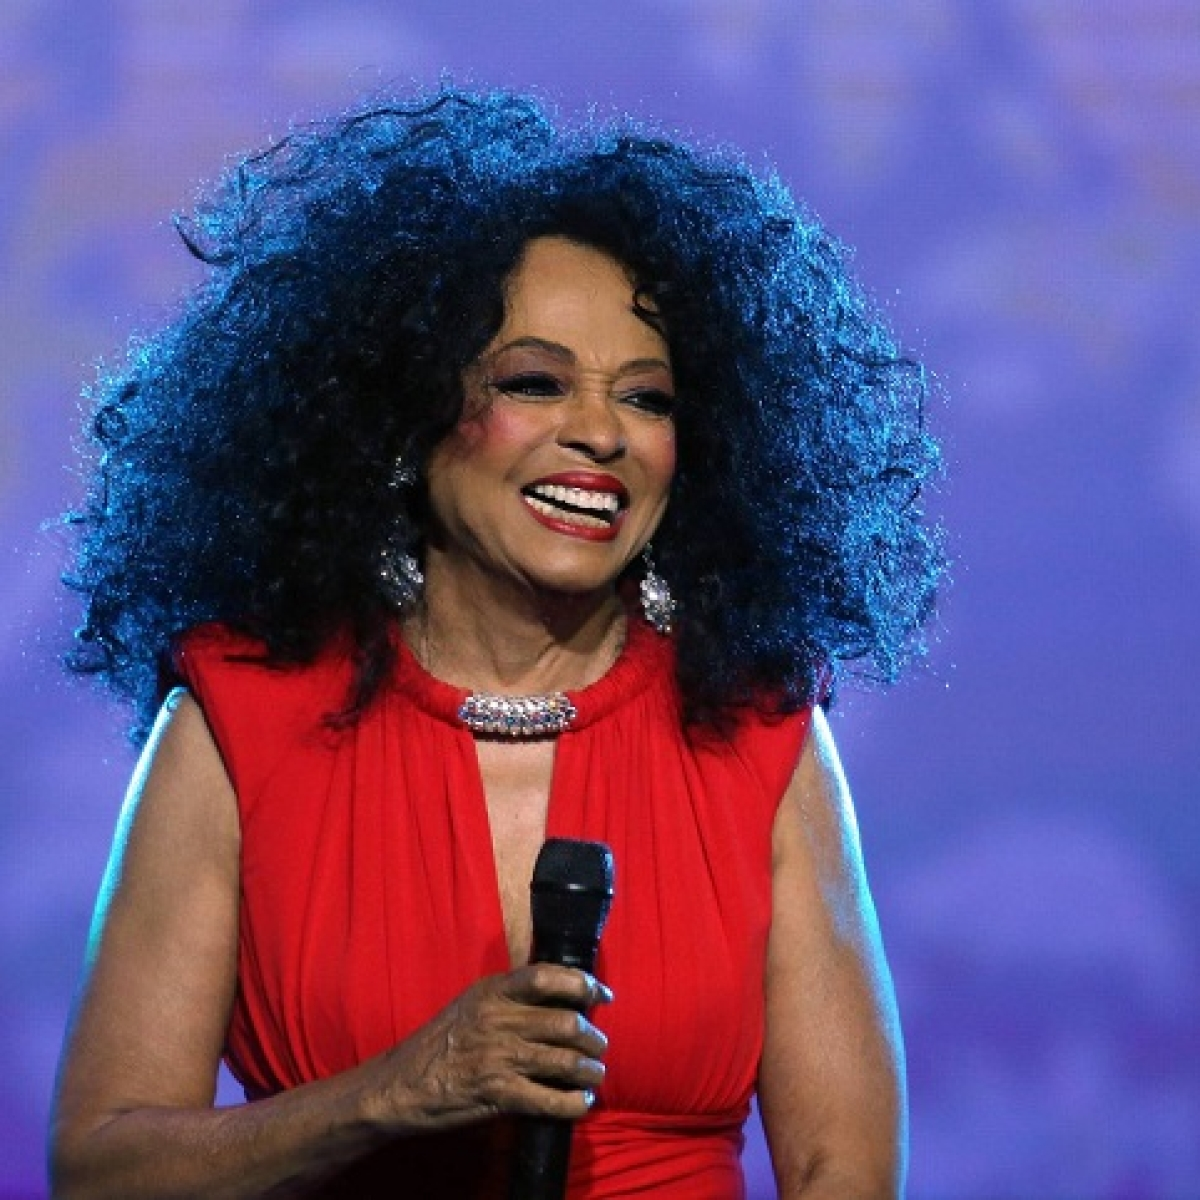 Diana Ross' first album in 15 years set for September release